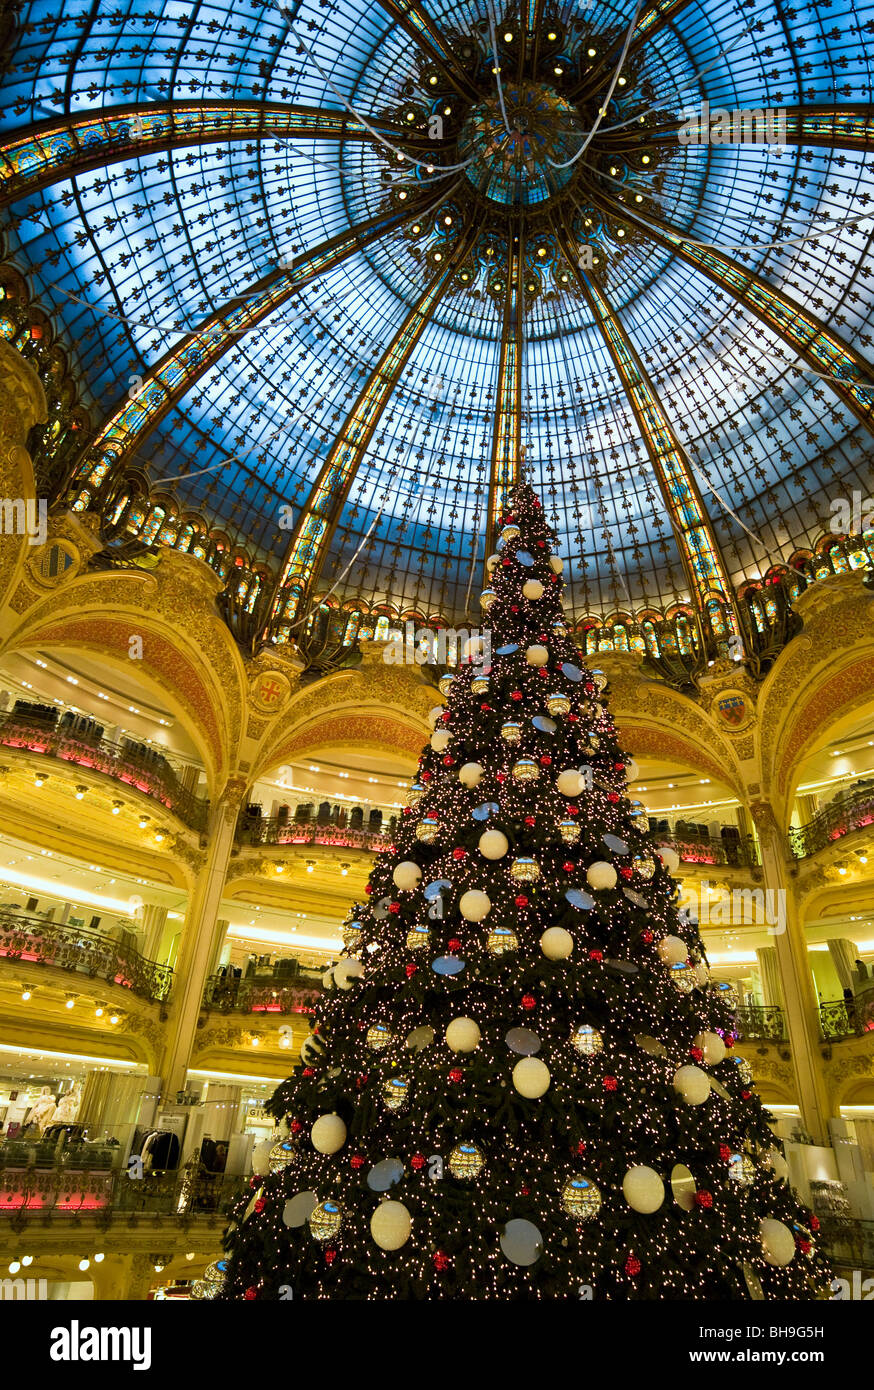 Christmas Paris France.Galeries La Fayette Department Store At Christmas Paris